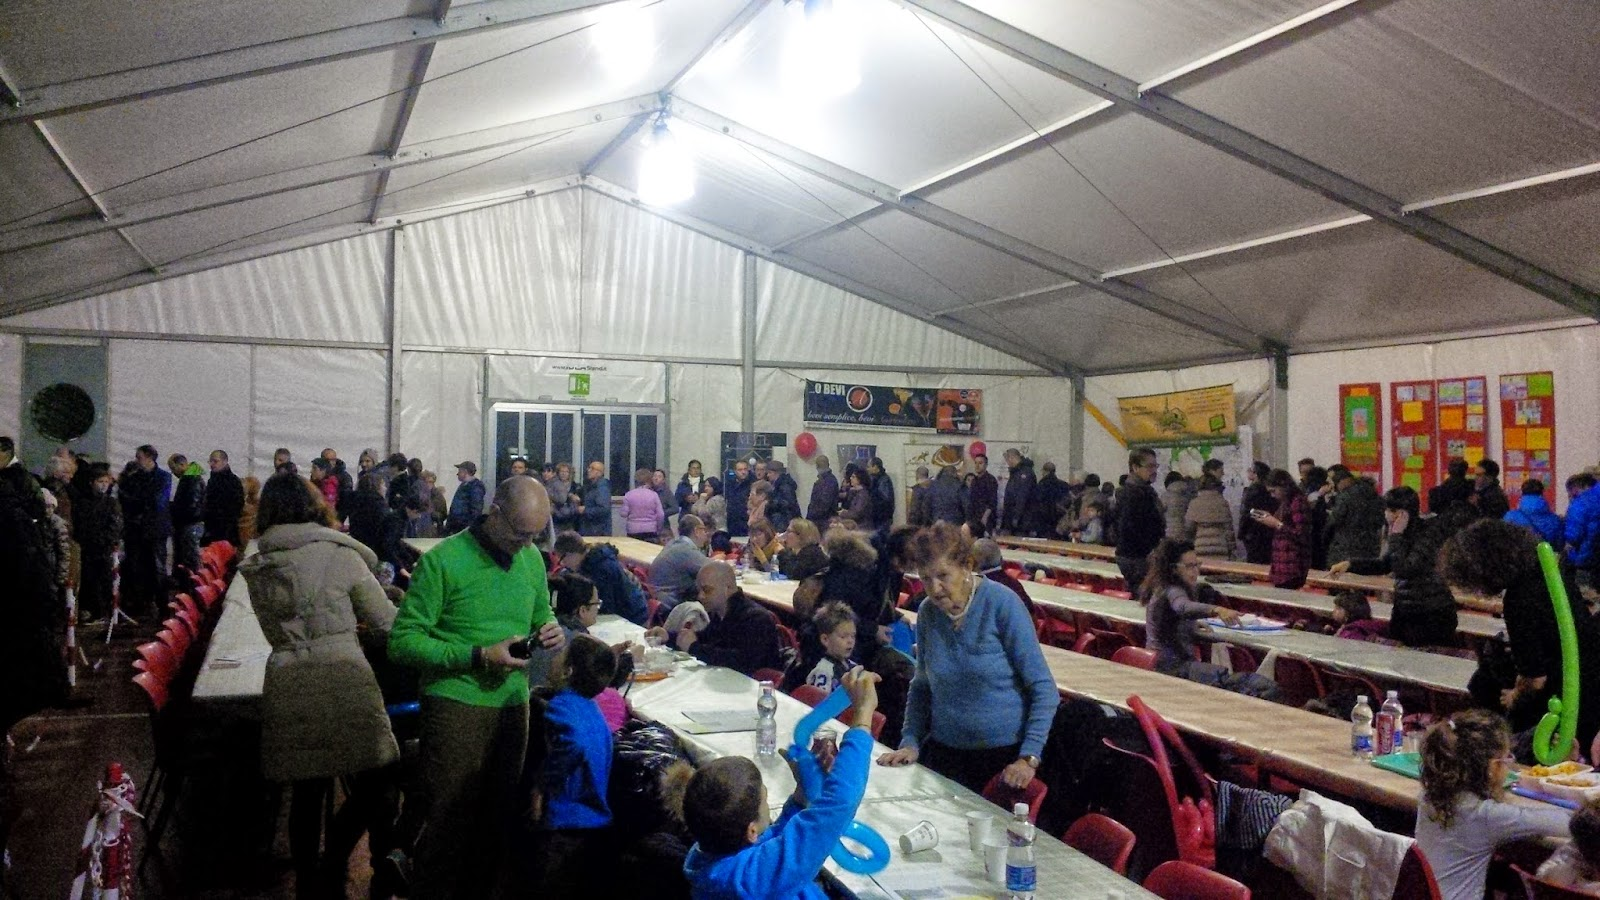 Inside the festival tents in Creazzo